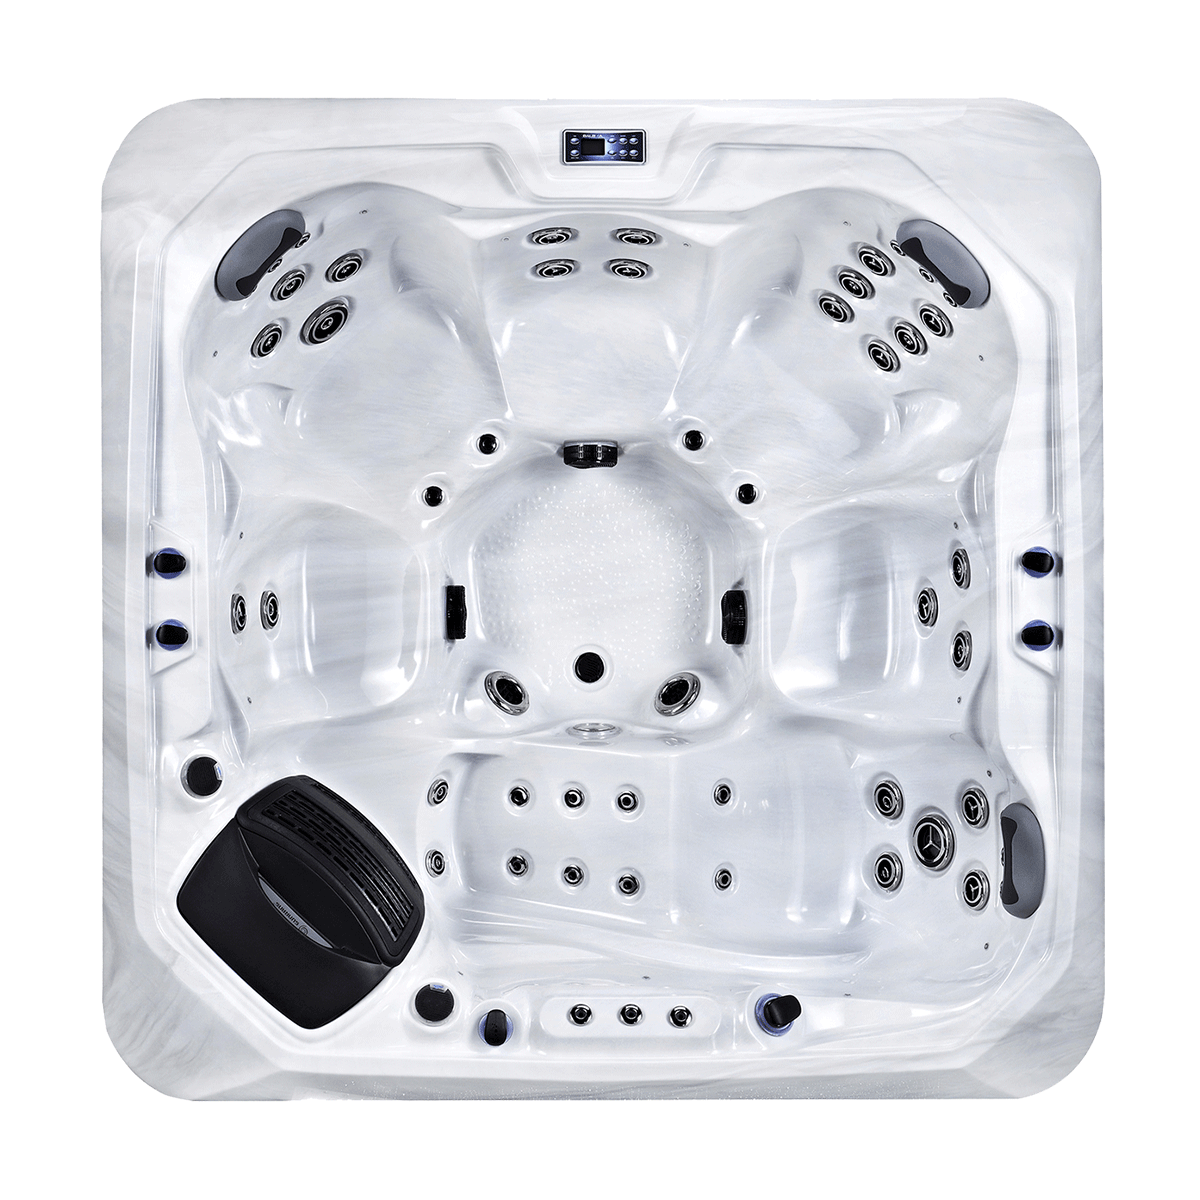 Carra Six Person Home Hot Tub